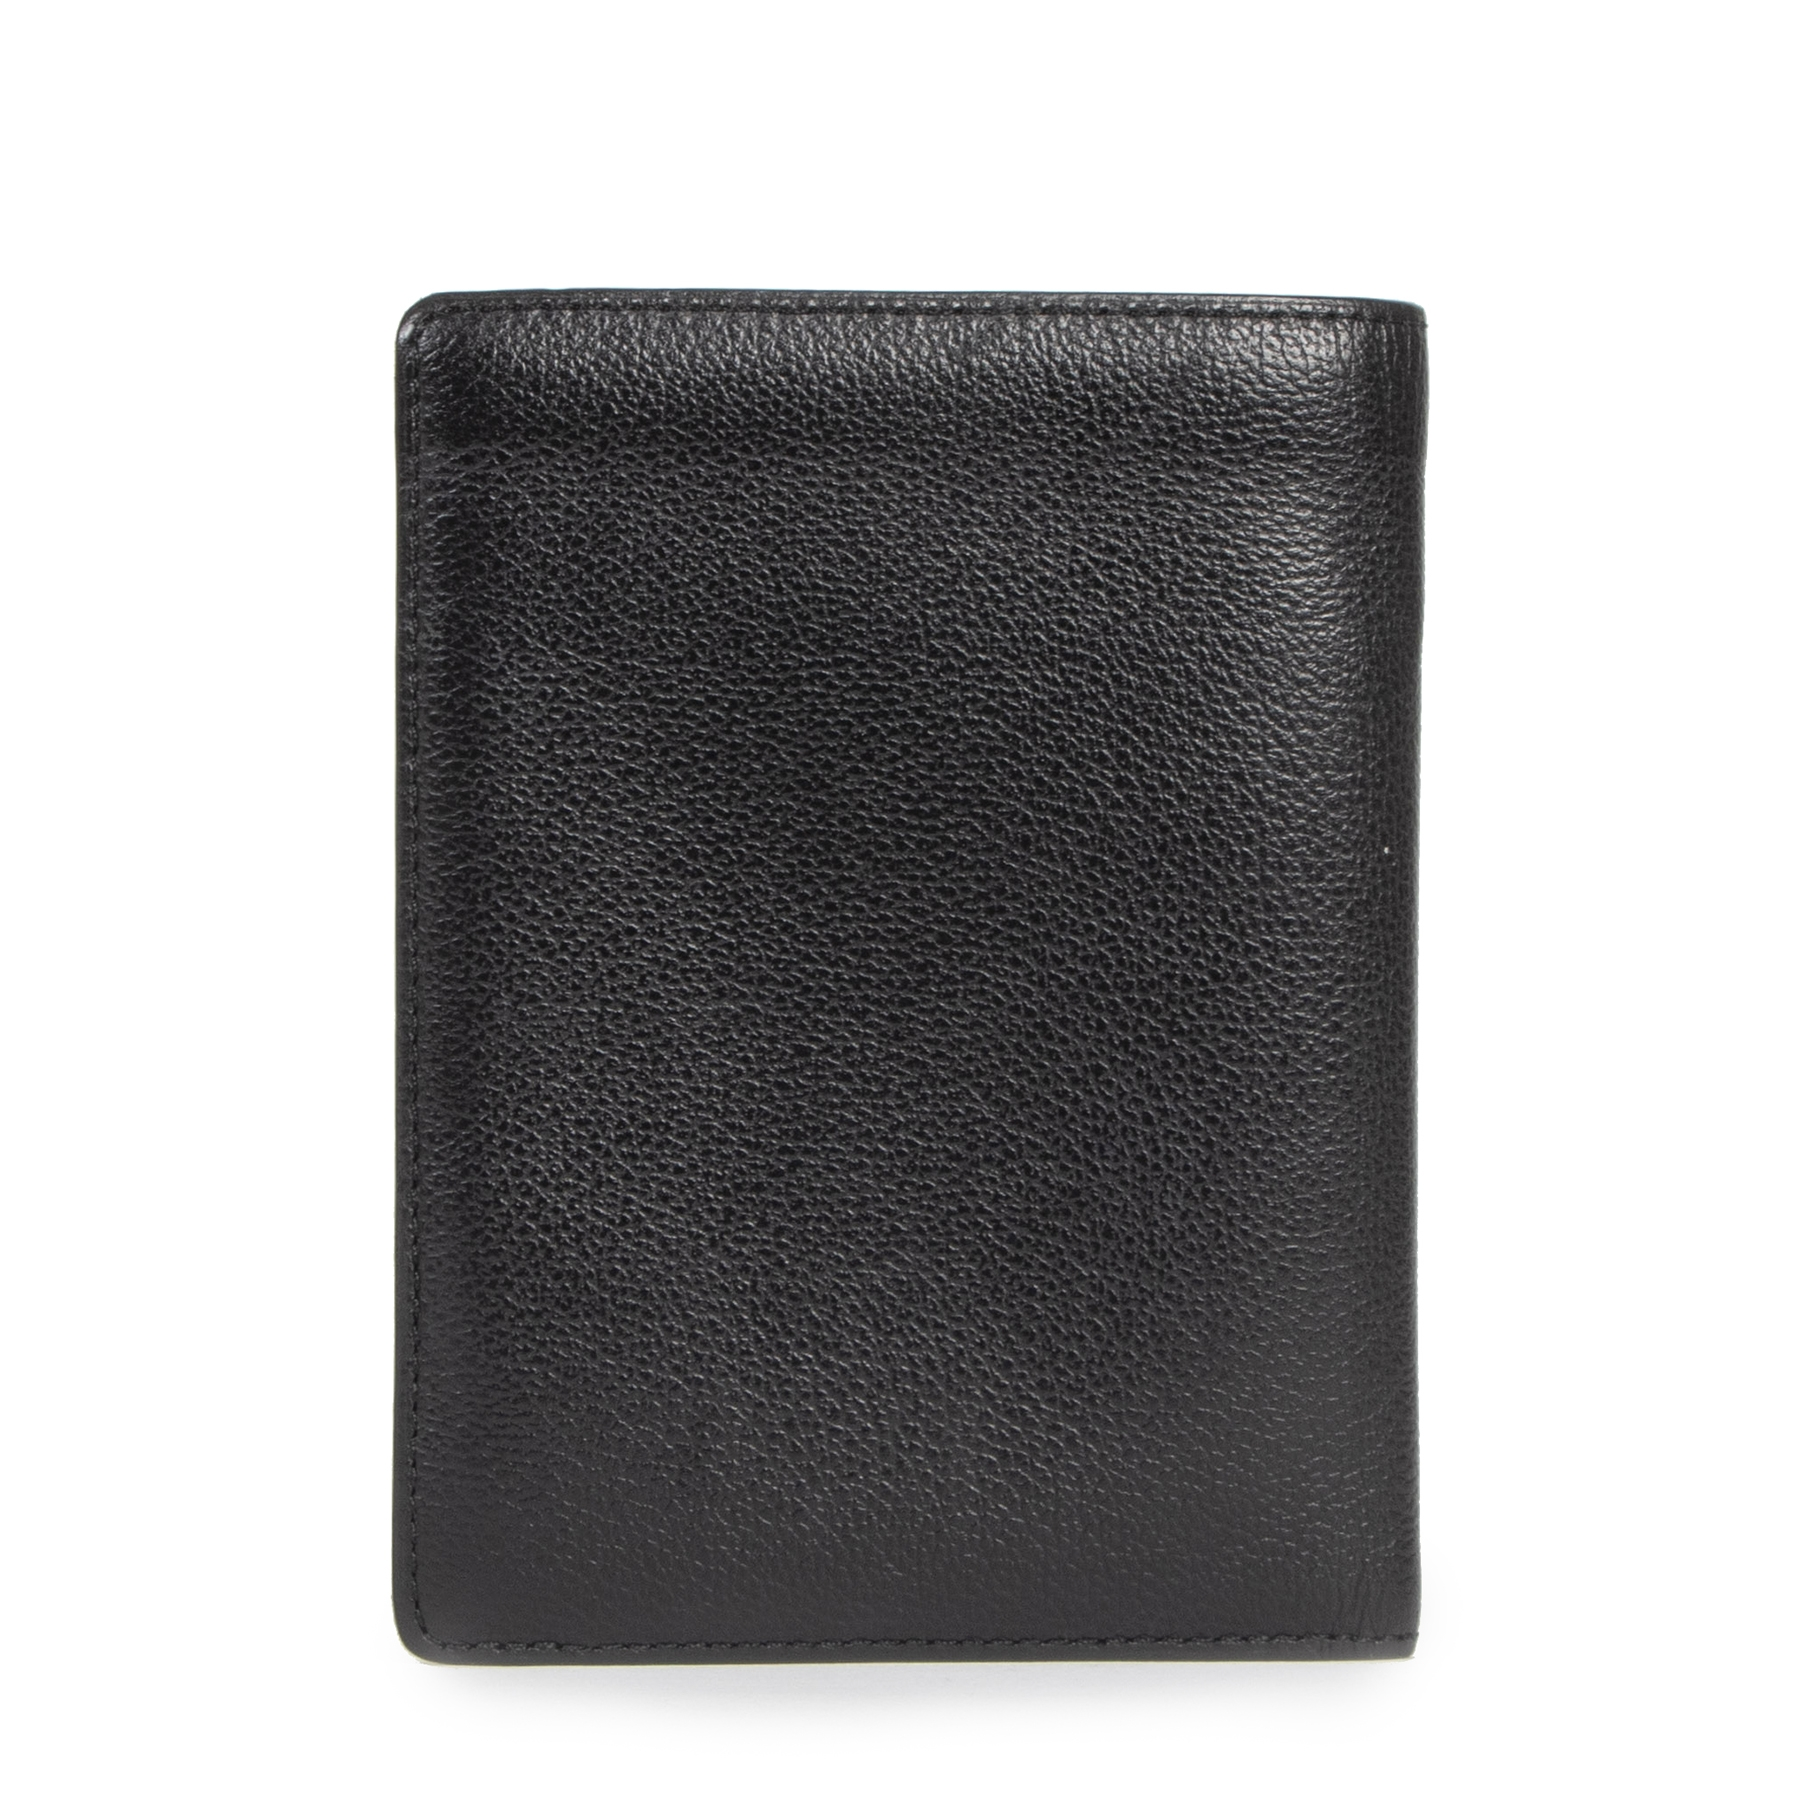 Buy authentic secondhand Delvaux wallets at labelLOV Antwerp